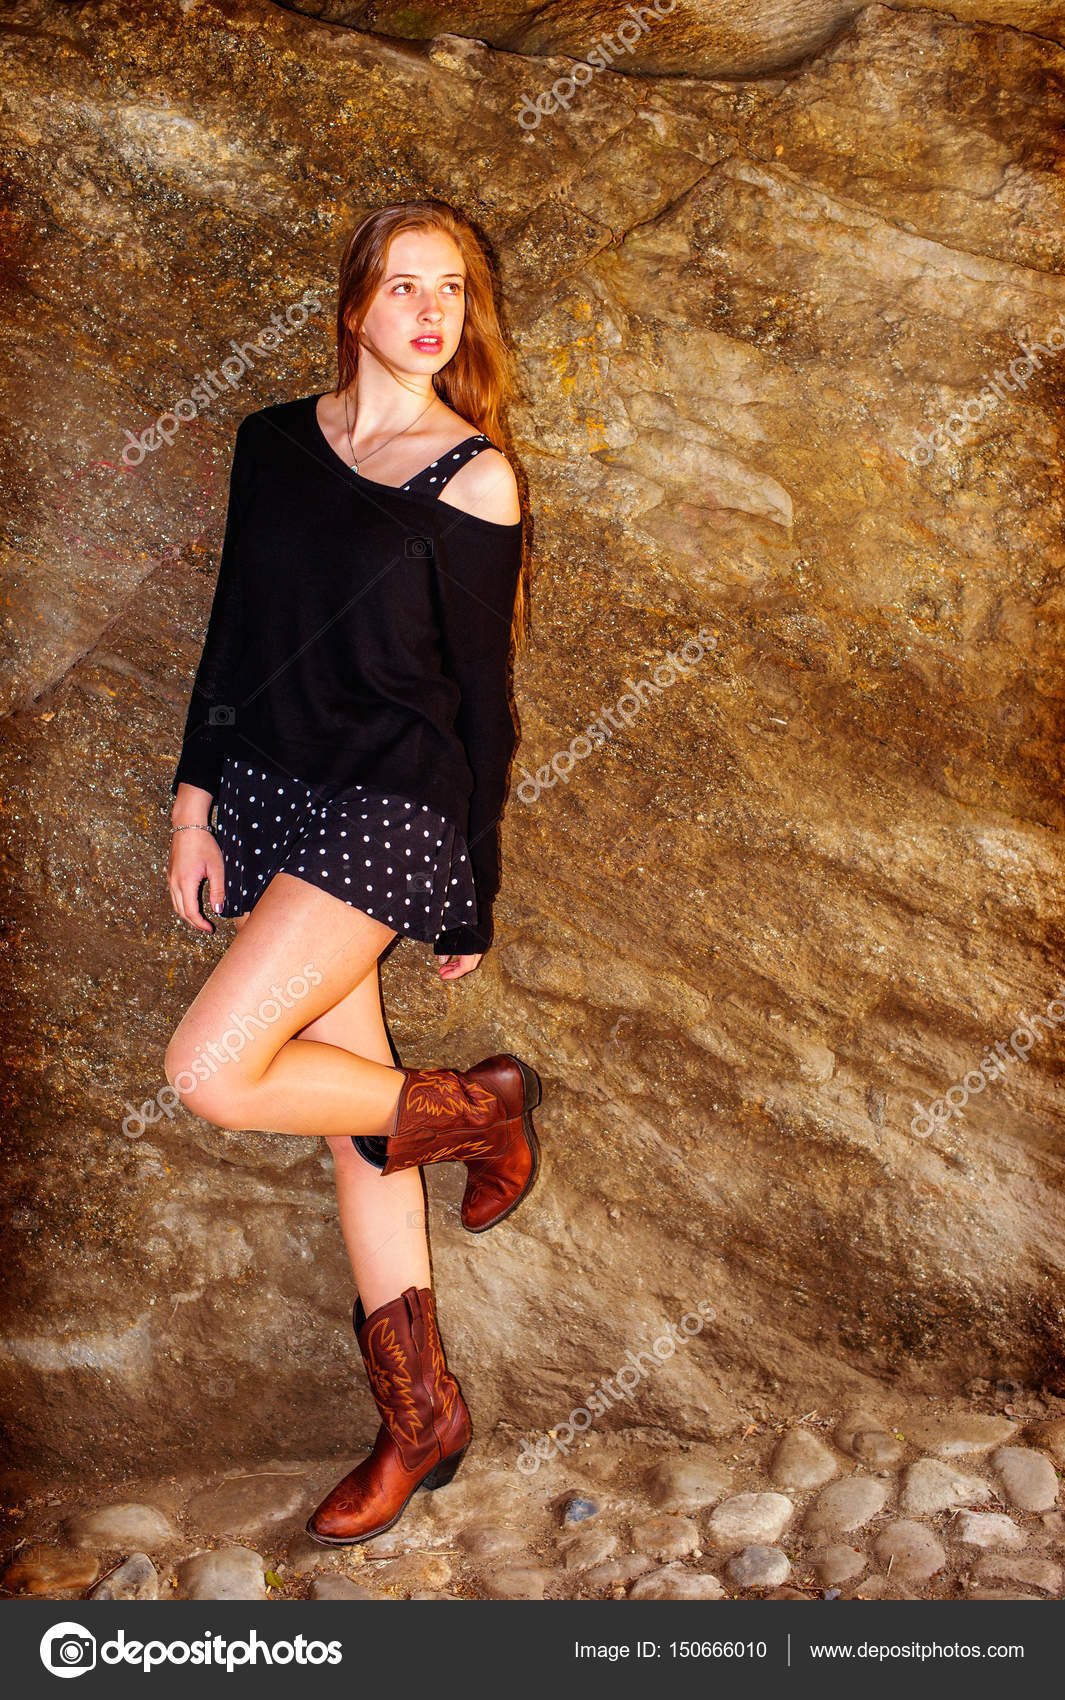 f7e8ce3261d American teenage girl wearing black knit sweater, off one shoulder,  patterned skirt, brown boots, standing against rock wall at Central Park,  New York, ...